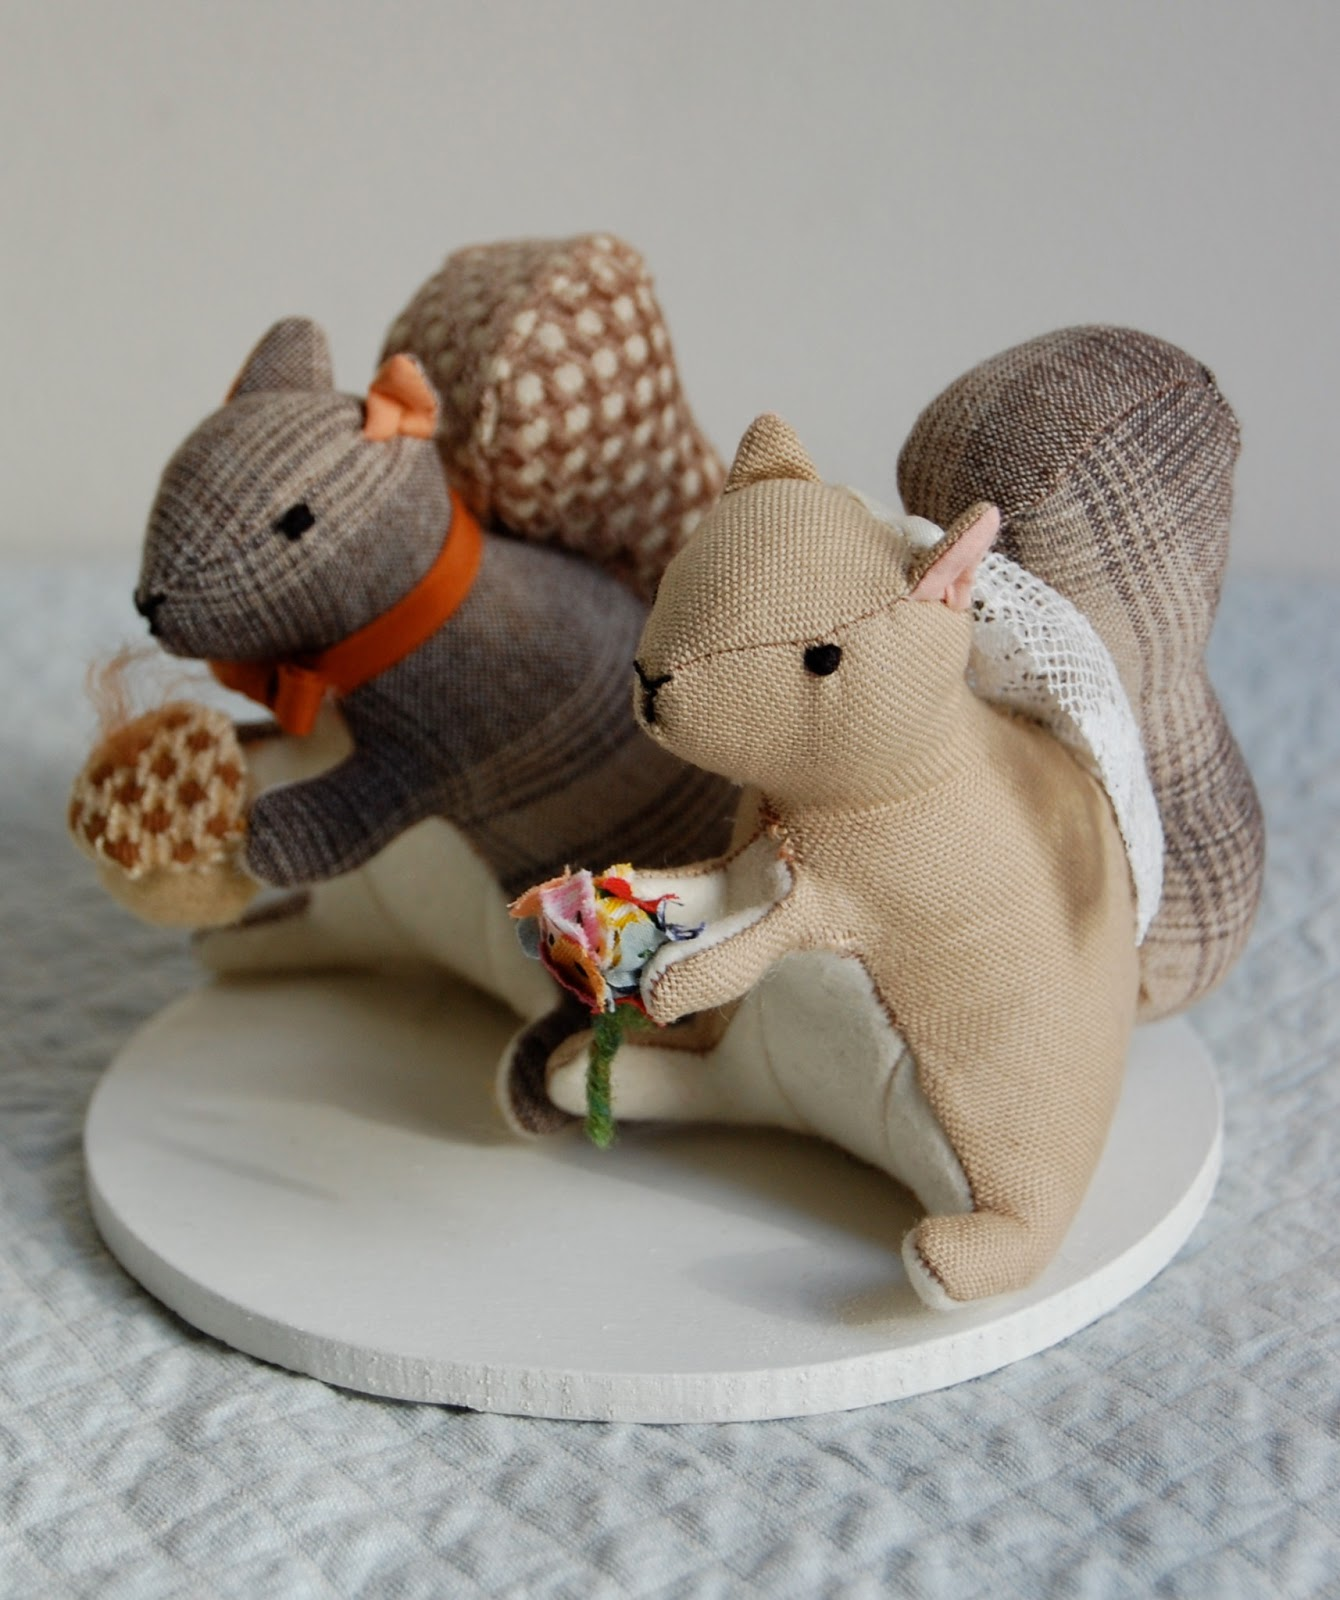 Quirky Artist Loft Mr Squirel Free Pattern